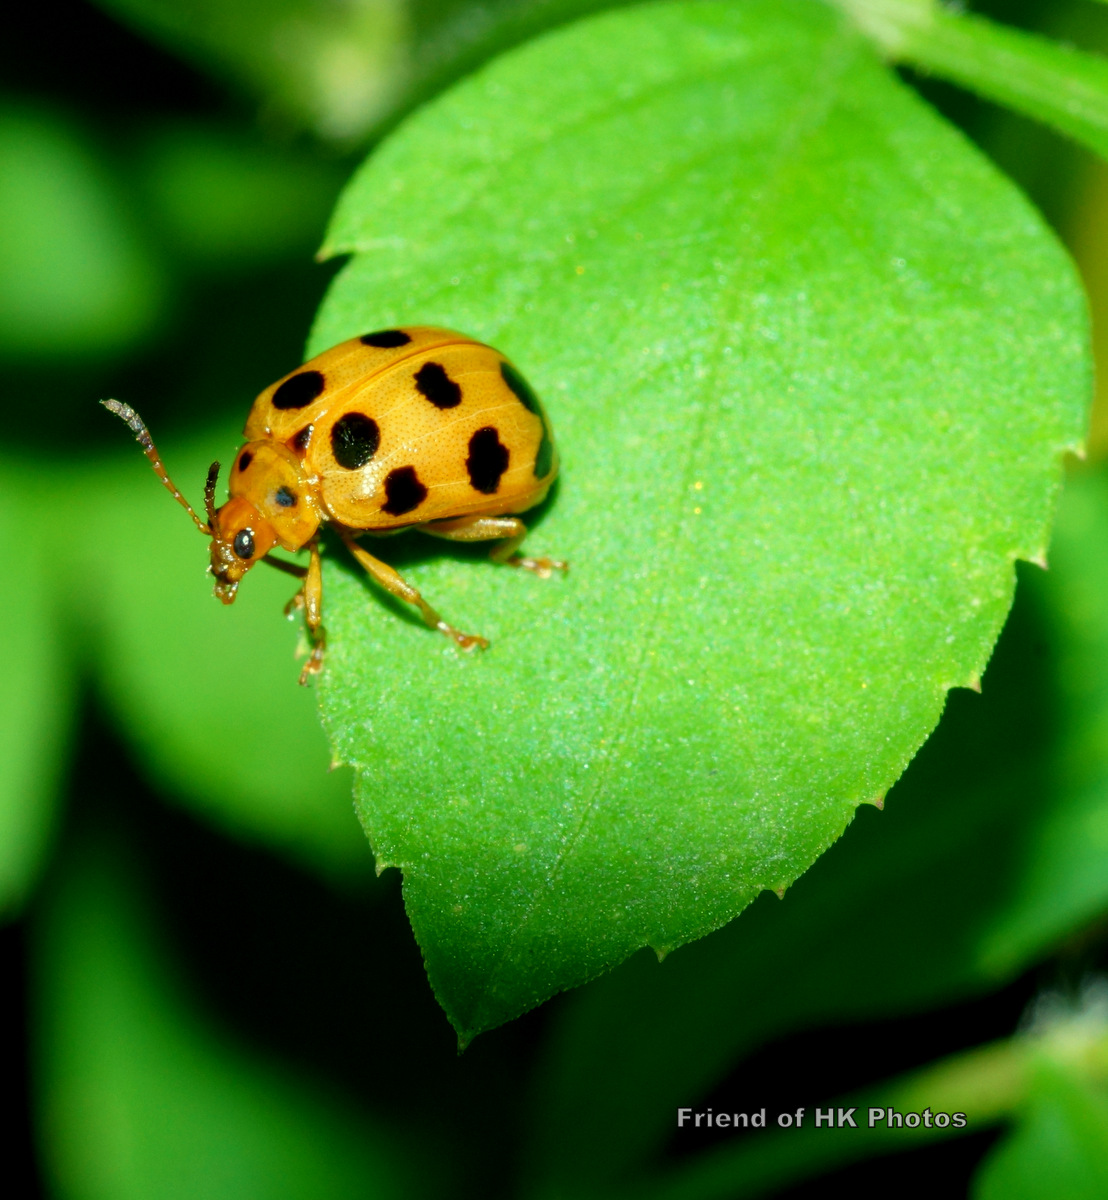 Photographic Wildlife Stories In UK/Hong Kong: Bugs In The